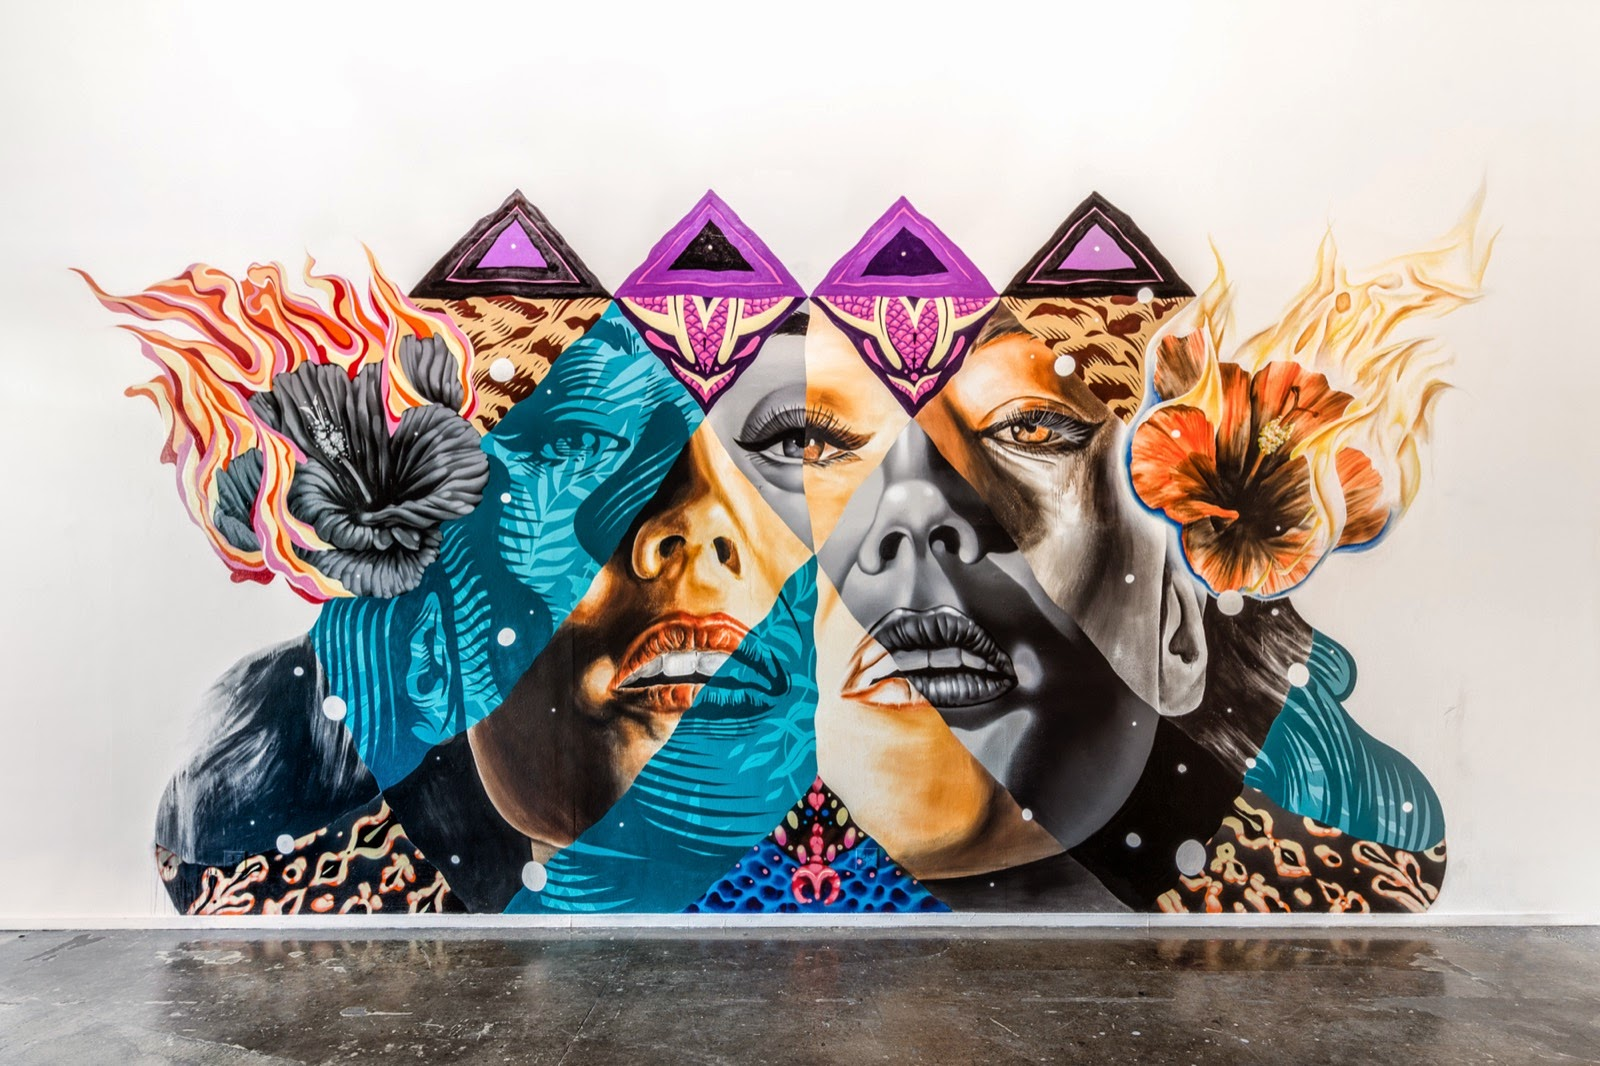 Last week in California, our friends Kamea Hadar and Tristan Eaton teamed up to work on a new indoor installation in the Korea Town district of Los Angeles.